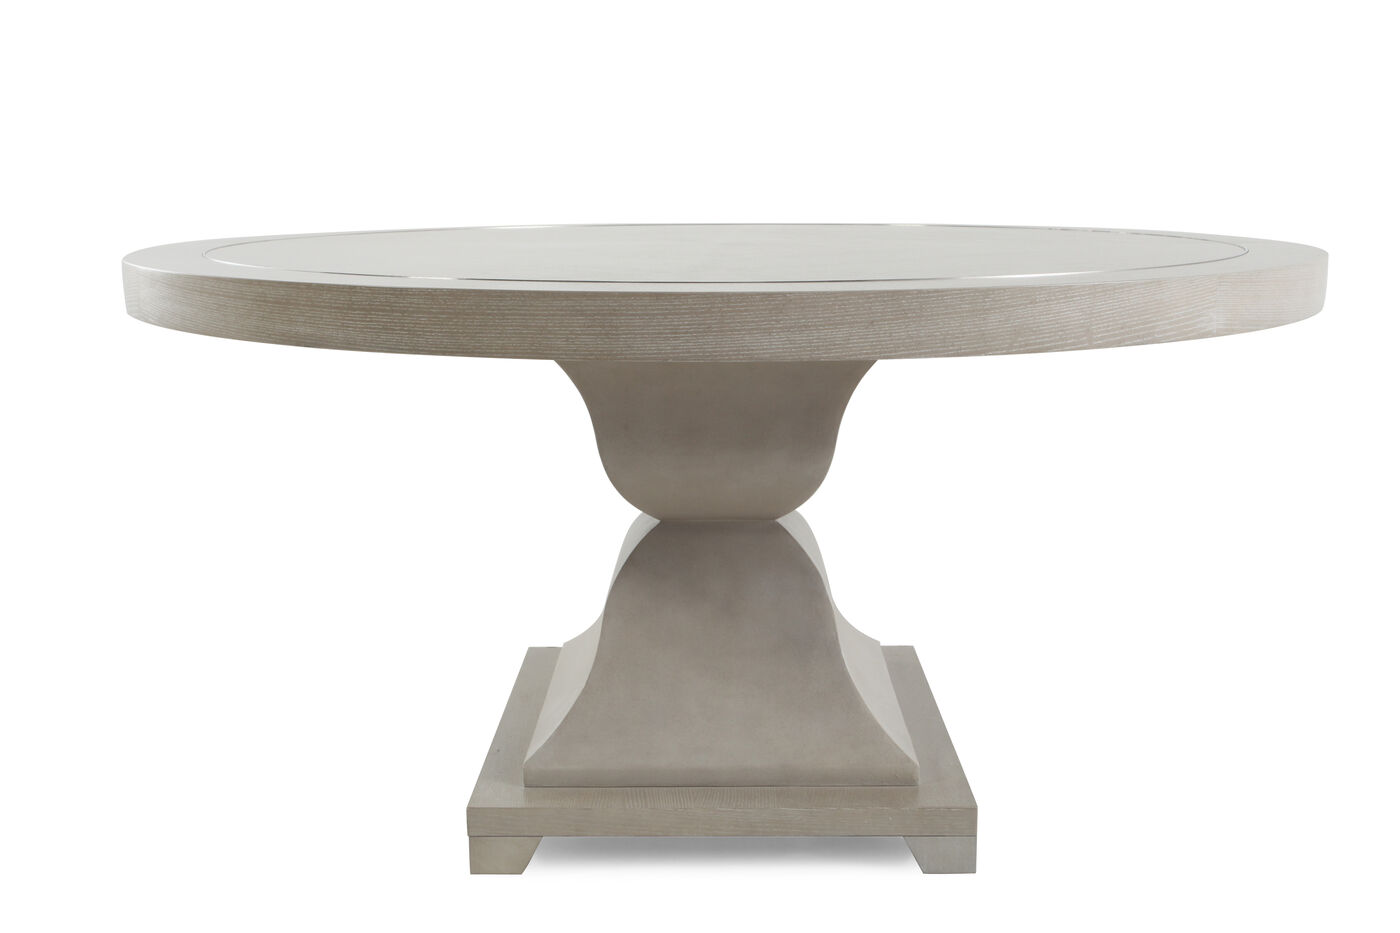 Metropolitan Round Dining Table With Leather Patterns In - Grey round pedestal dining table